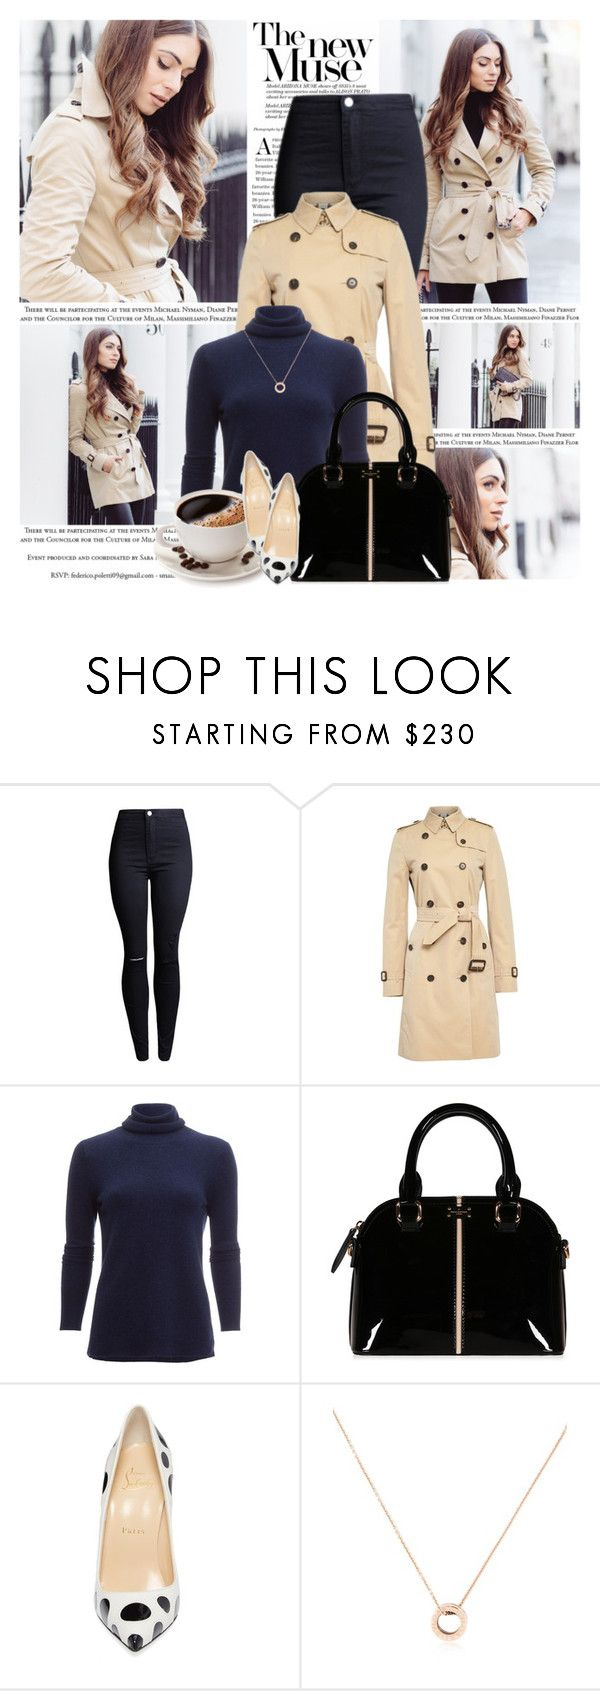 """-"" by l33l ❤ liked on Polyvore featuring Burberry, White + Warren, Christian Louboutin and Bulgari"